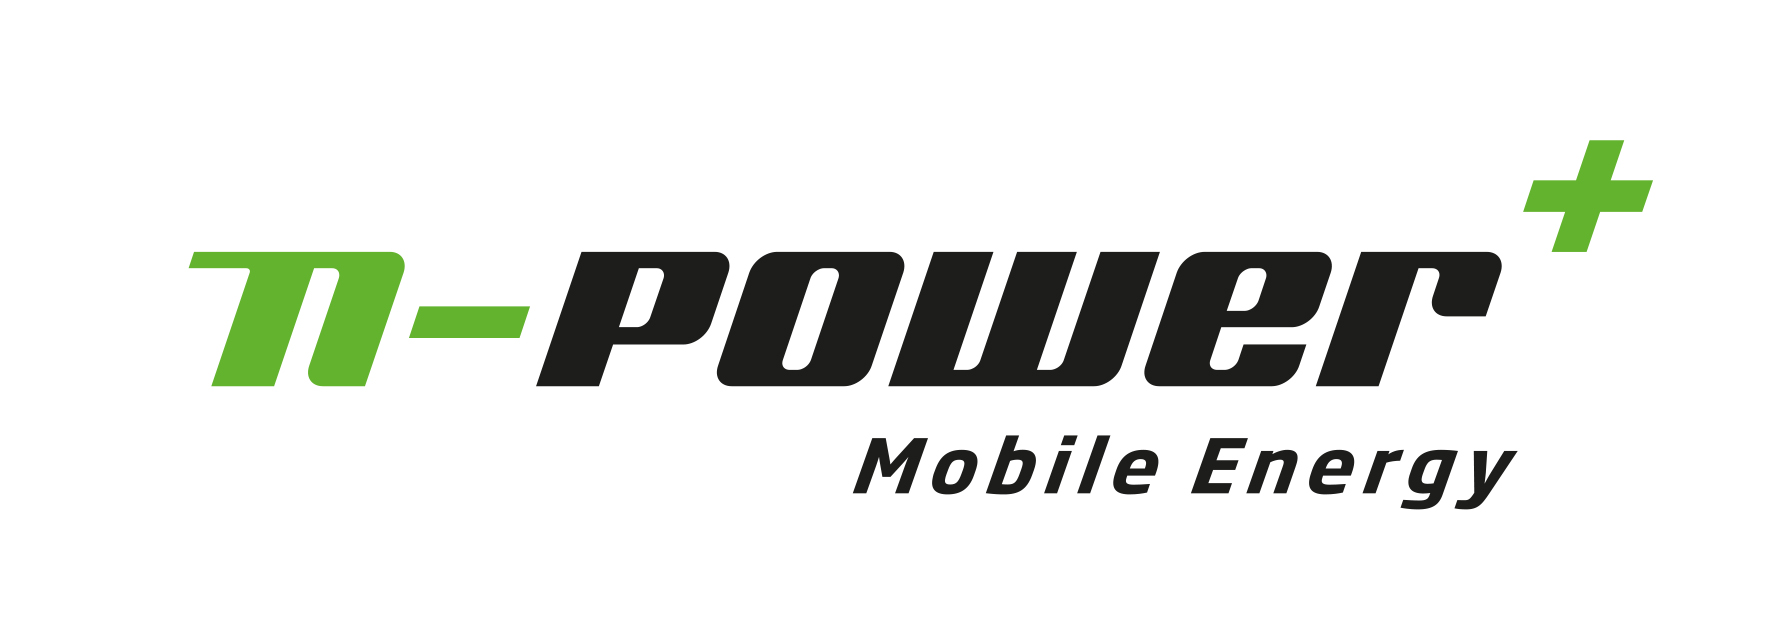 N-POWER, Mobile Energy